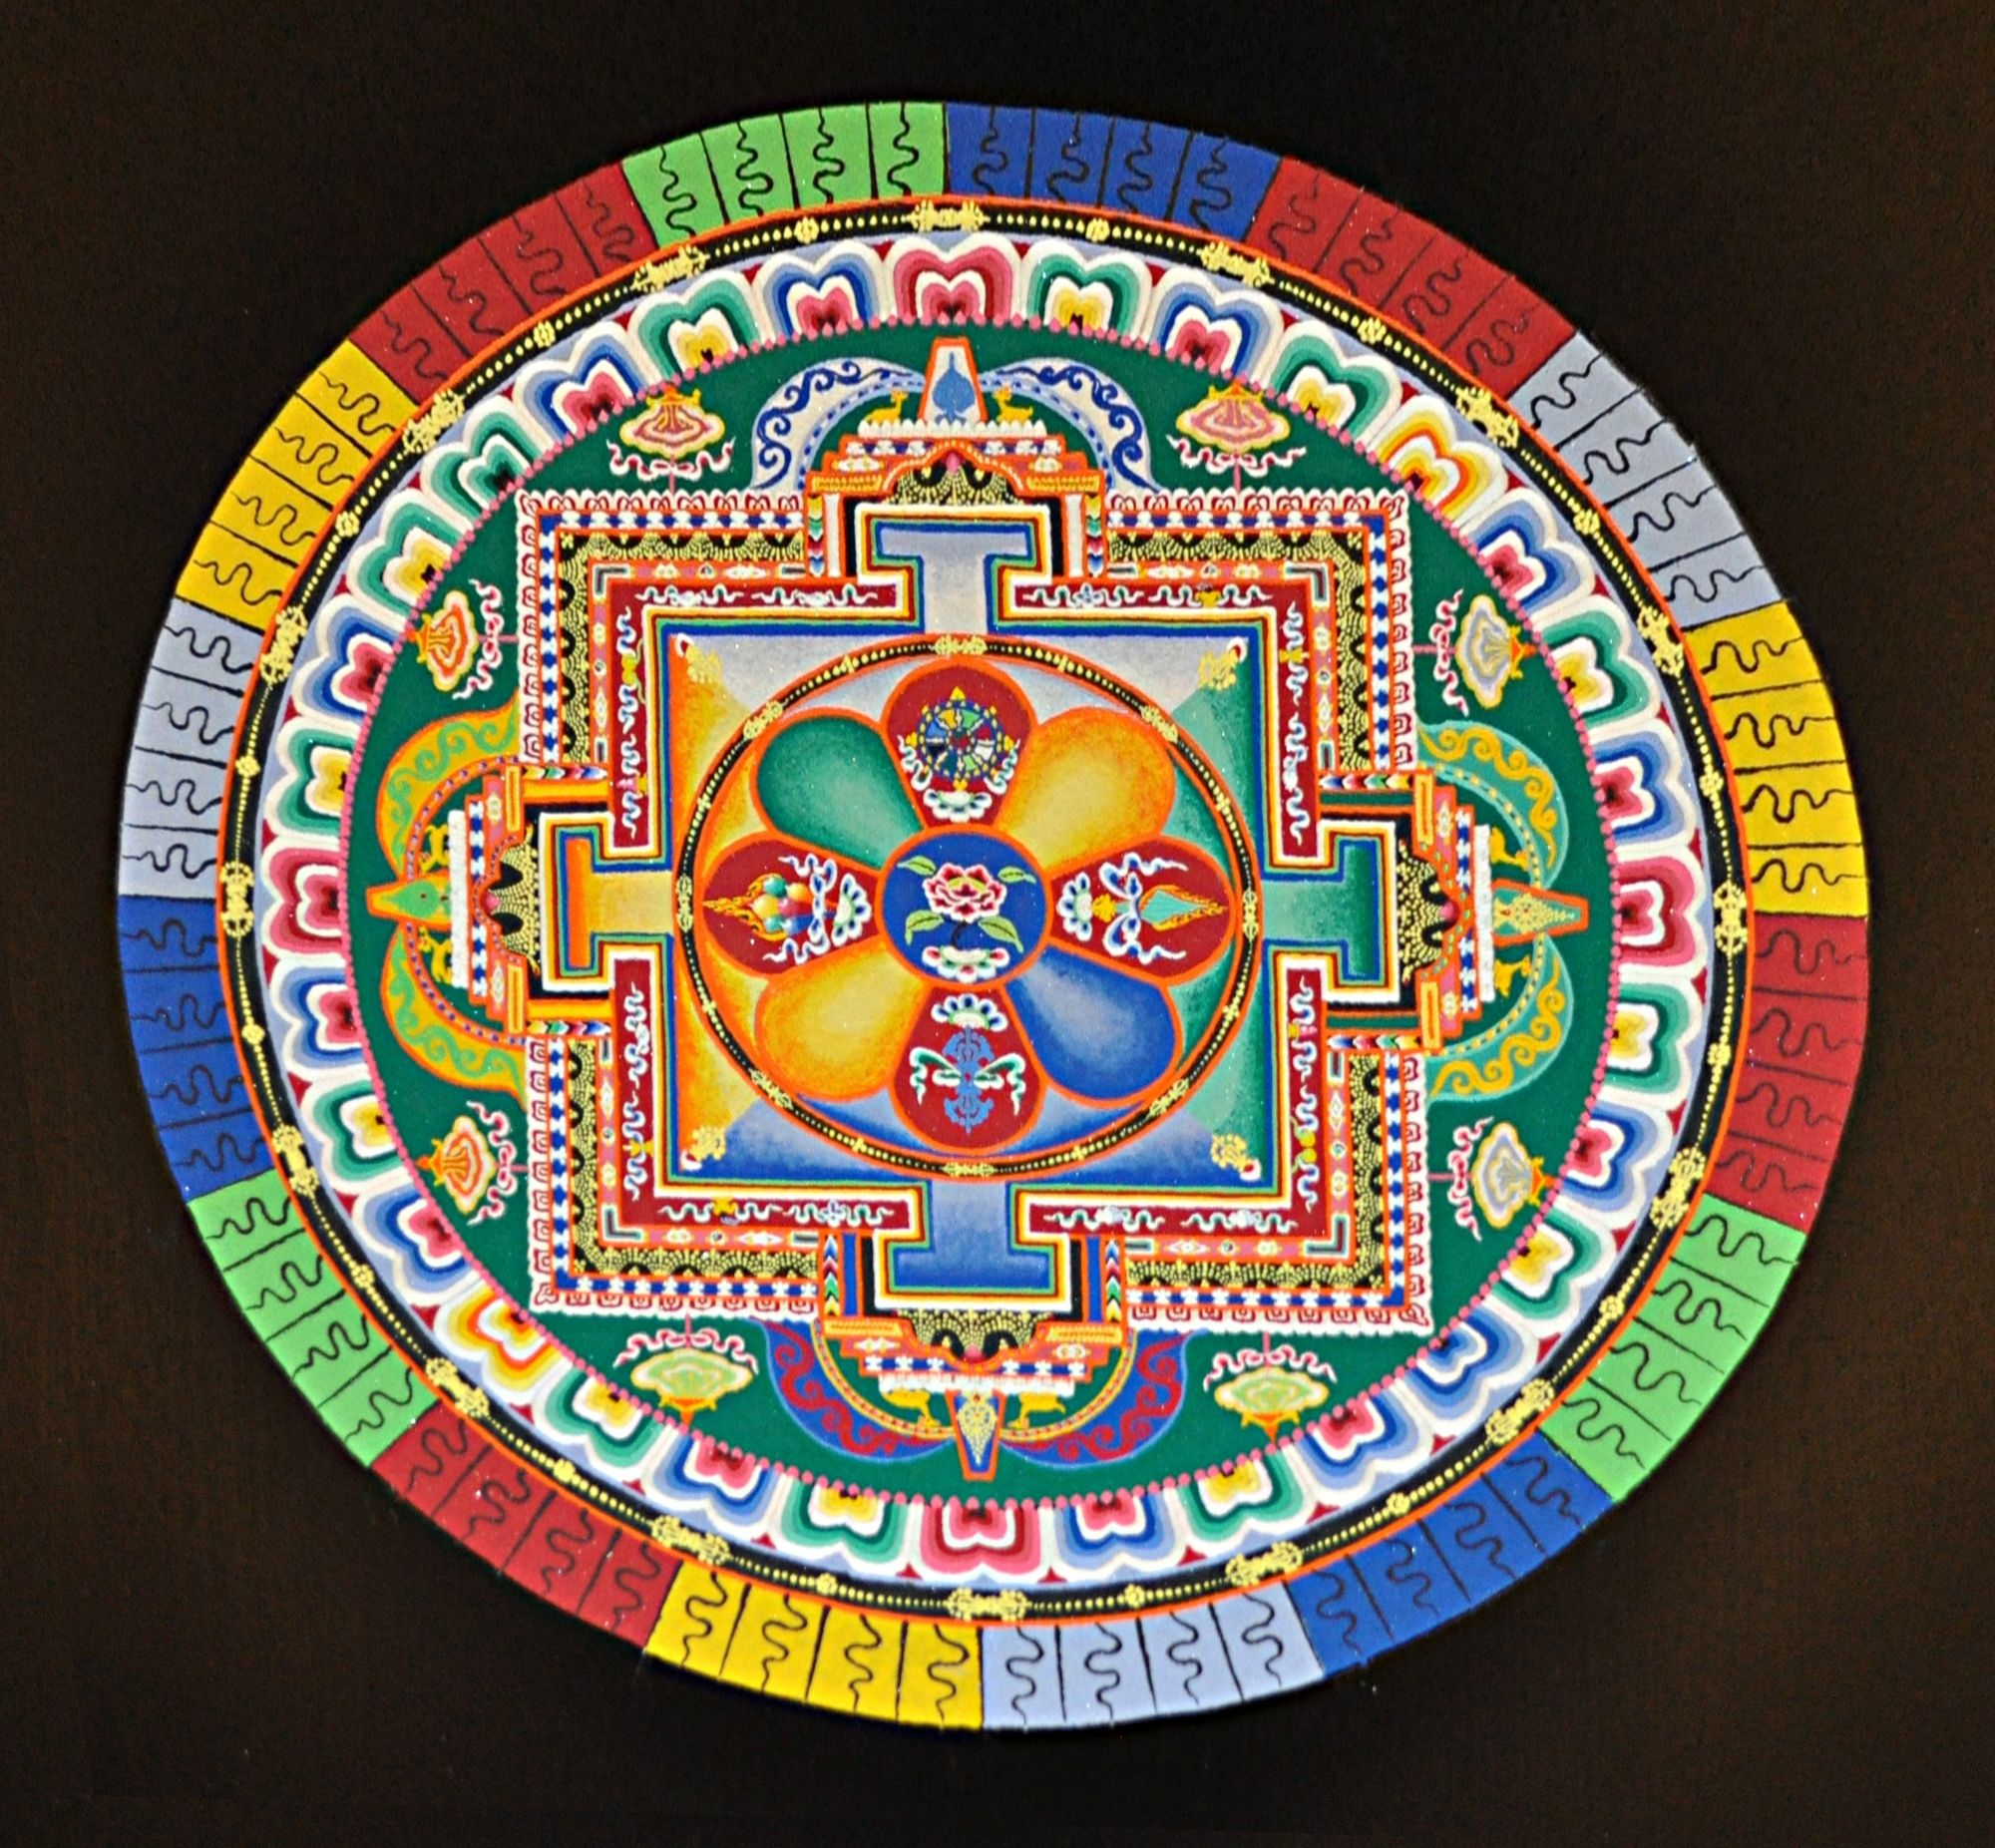 Tibetan Monks' Mandala Sand Painting-After the monks had completed the mandala, they allowed the public to observe the painting for one hour before they destroyed it with a brush,